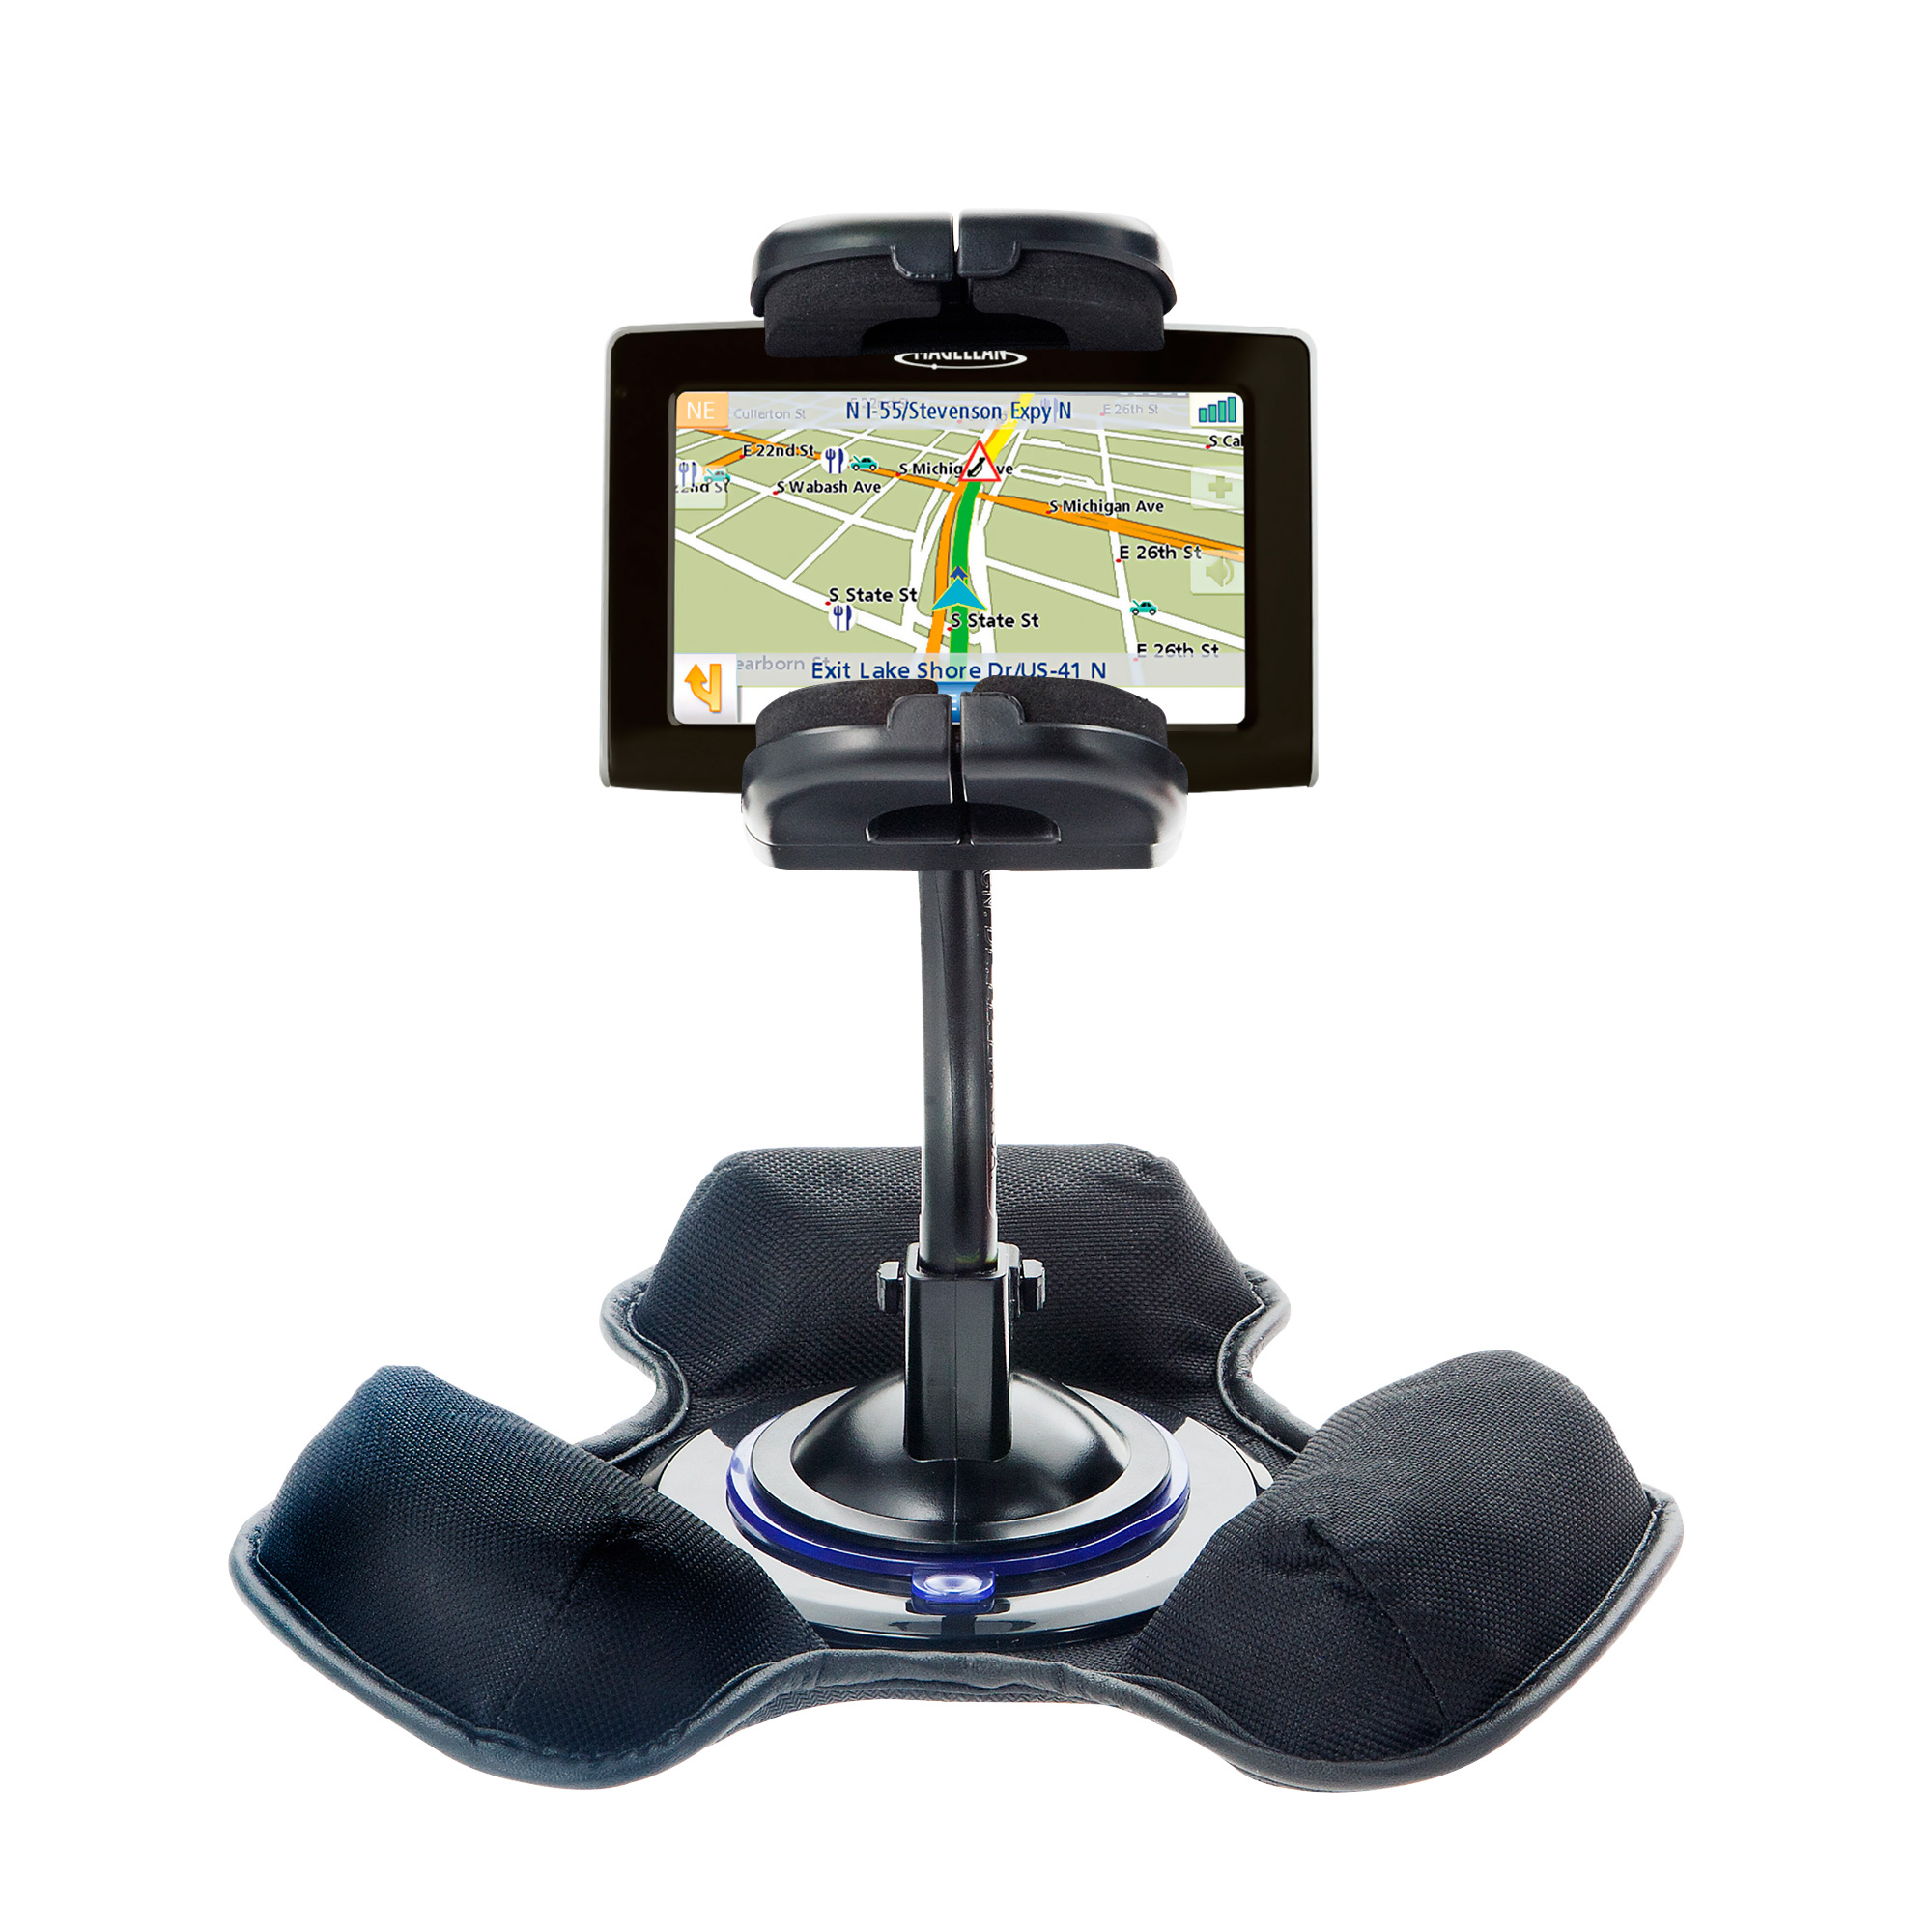 Dash and Windshield Holder compatible with the Magellan Maestro 4250